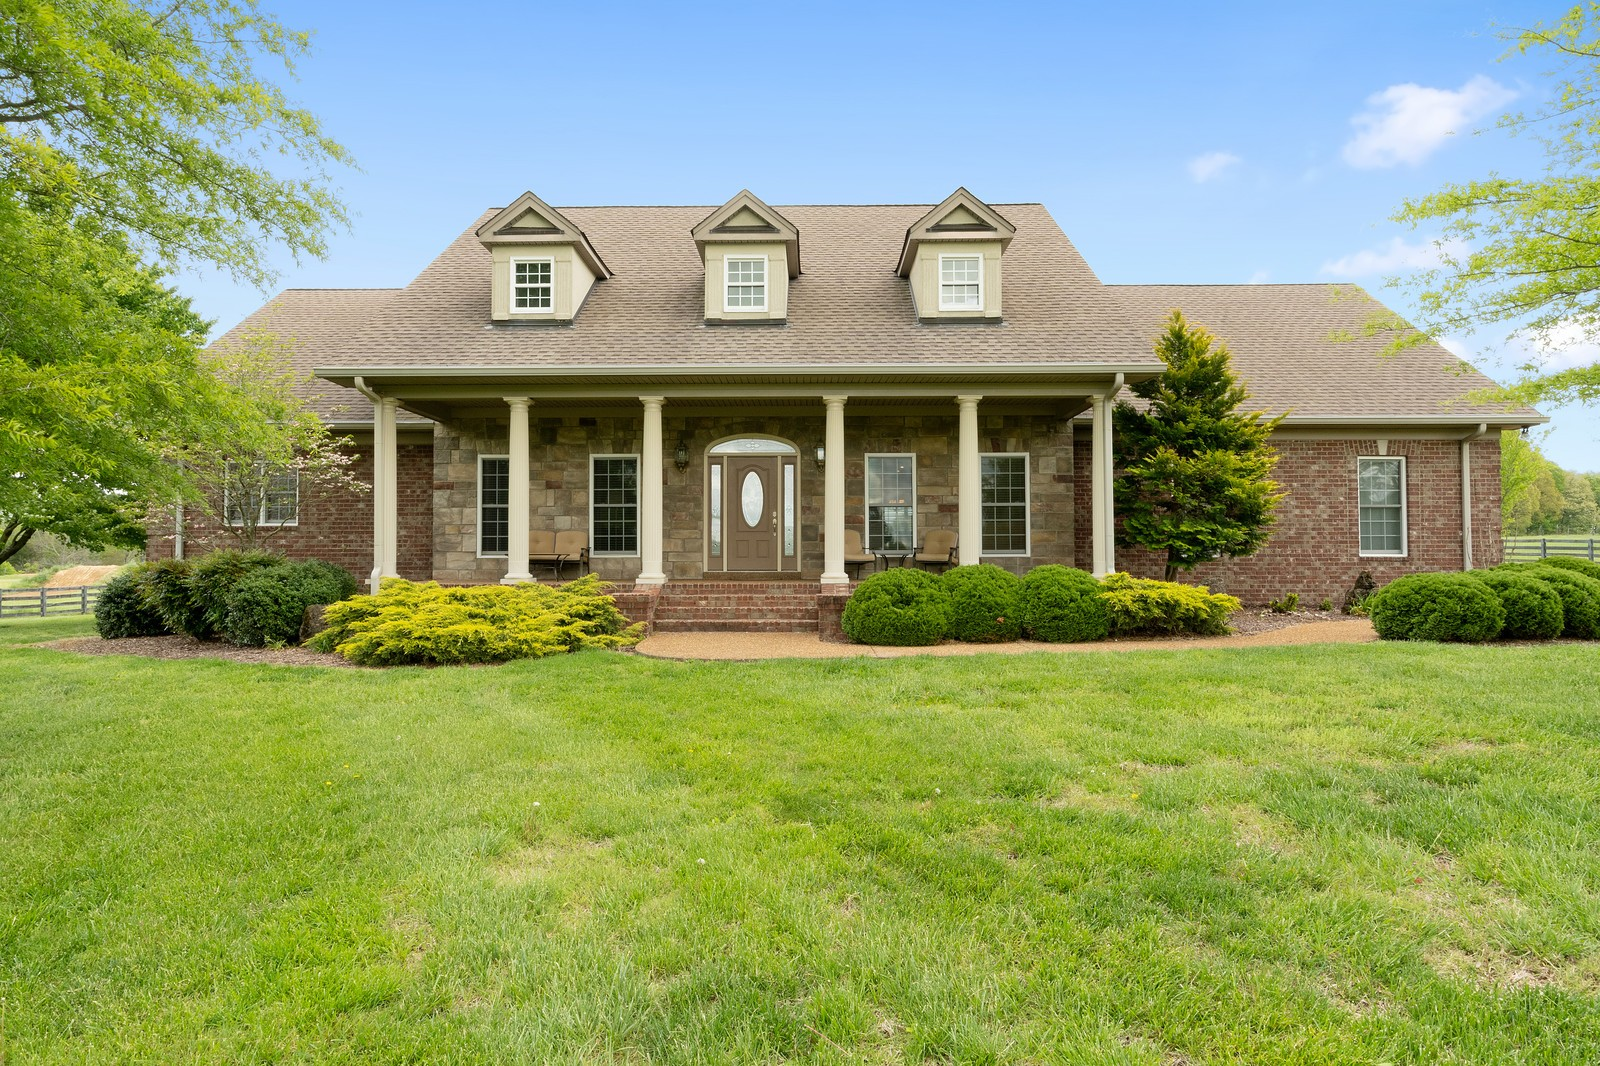 288 Lee Rd, Cottontown, TN 37048 - Cottontown, TN real estate listing